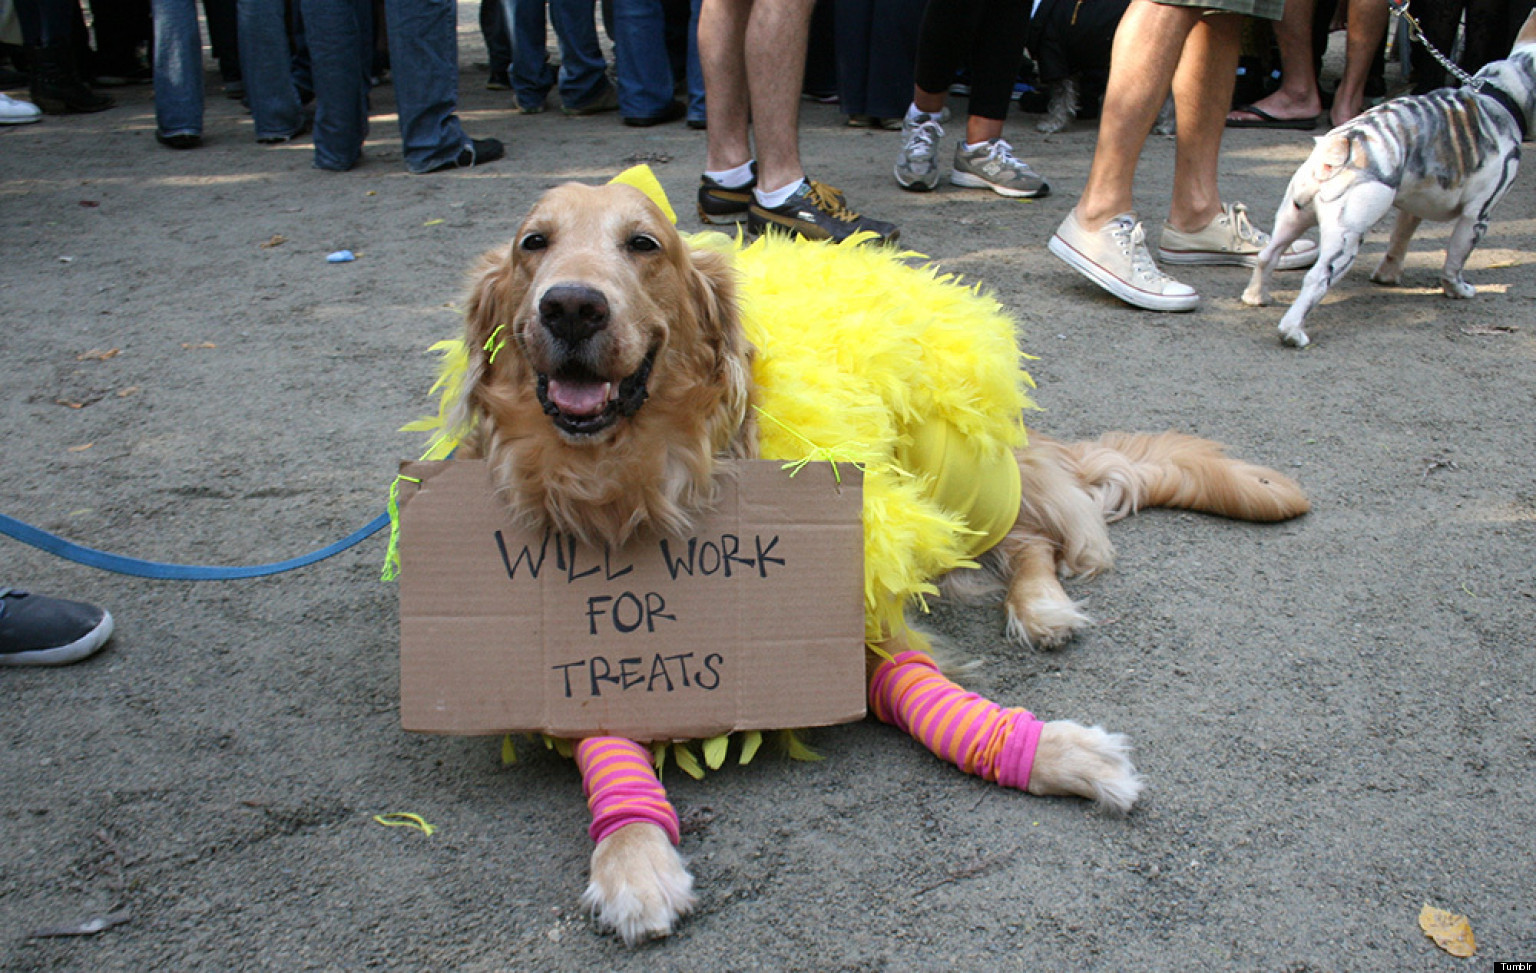 The Funniest Pet Halloween Costumes Submit Your Own PHOTOS